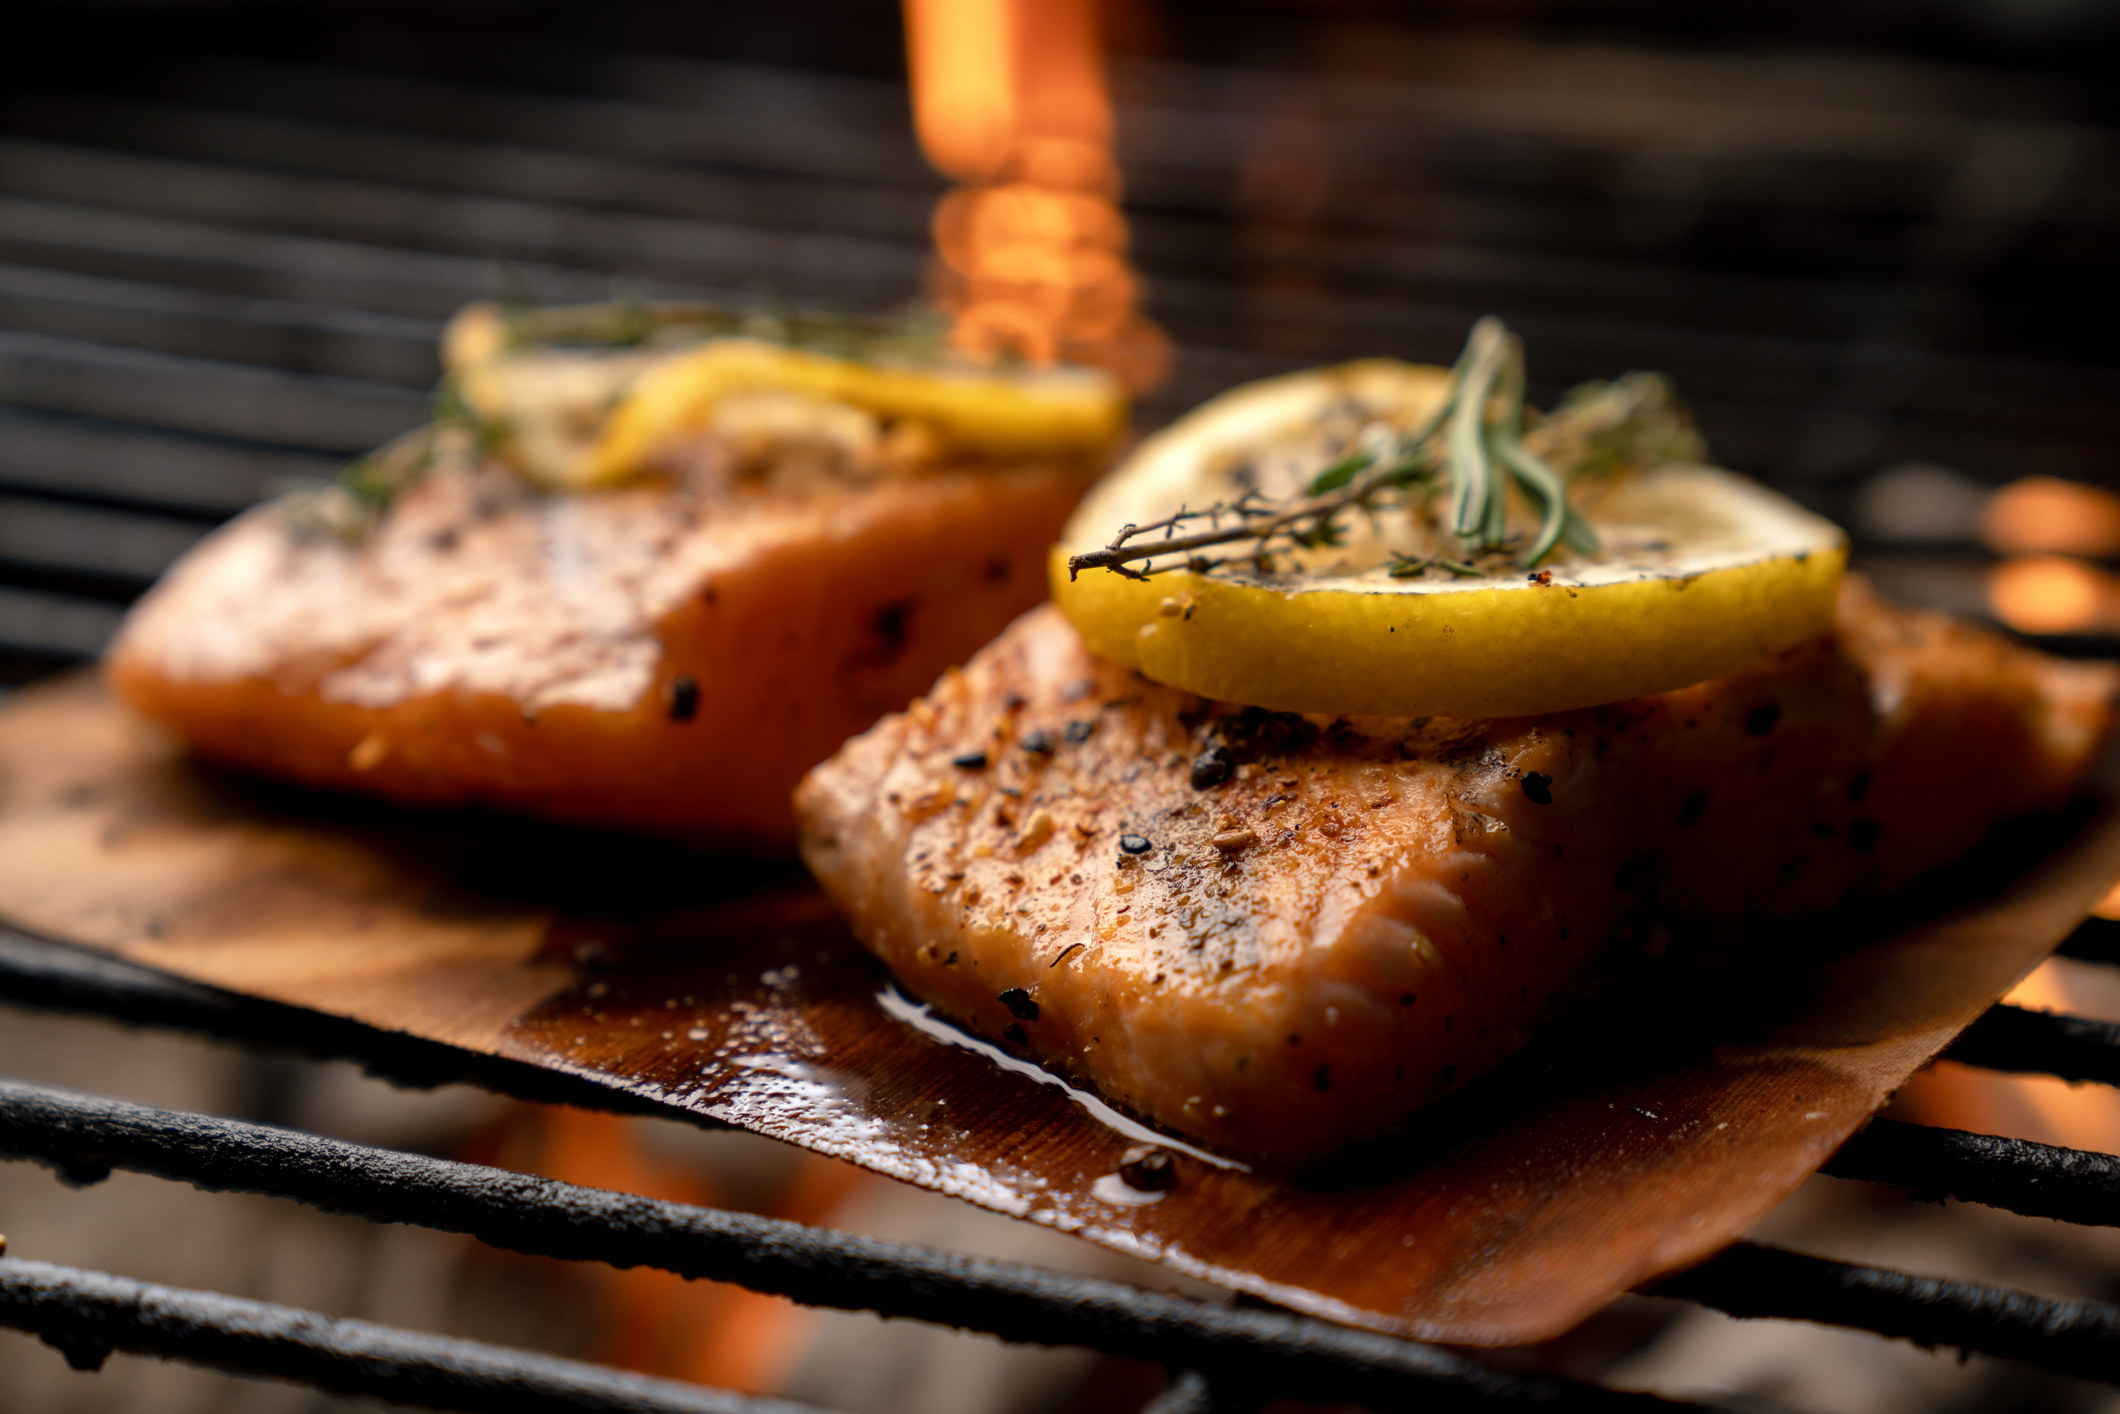 Two pieces of salmon on a wooden plank.